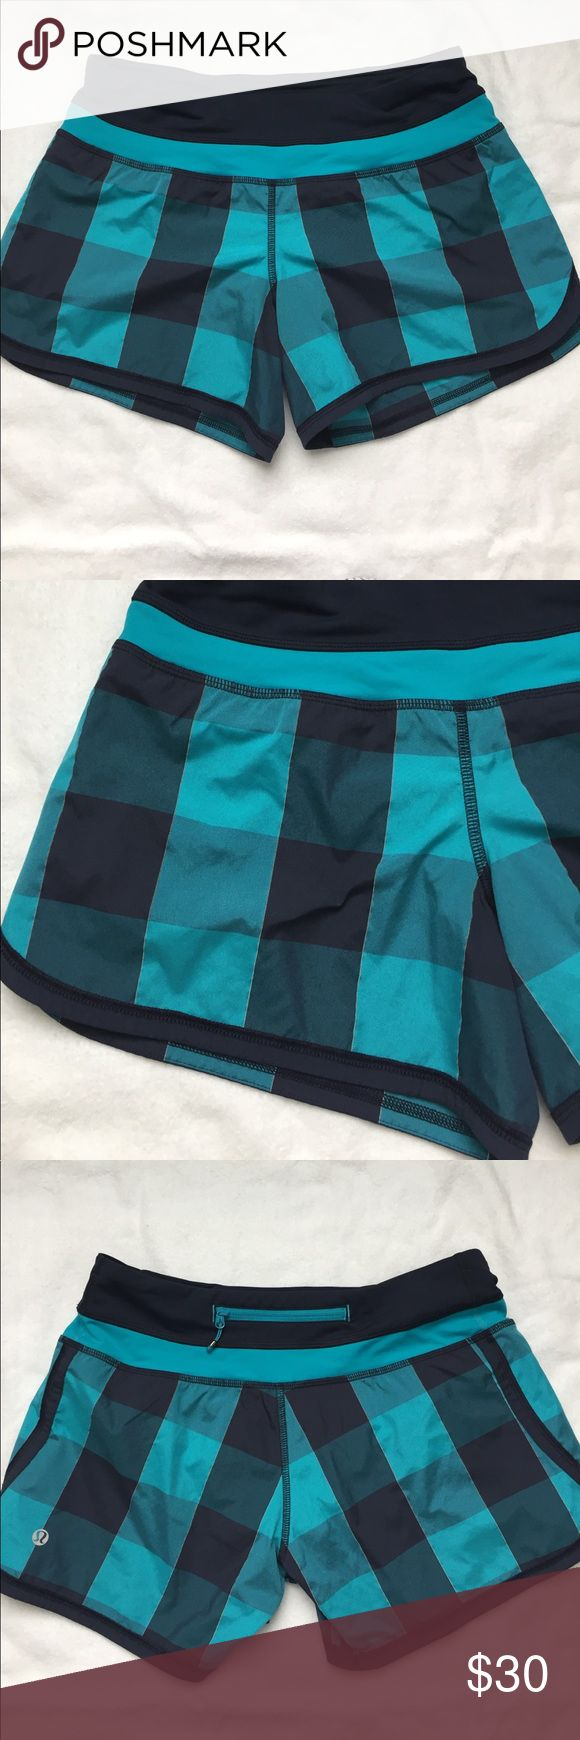 LuLu Lemon Run Speed Shorts sz 4 Like new condition! No flaws. Size 4 speed runner. lululemon athletica Other